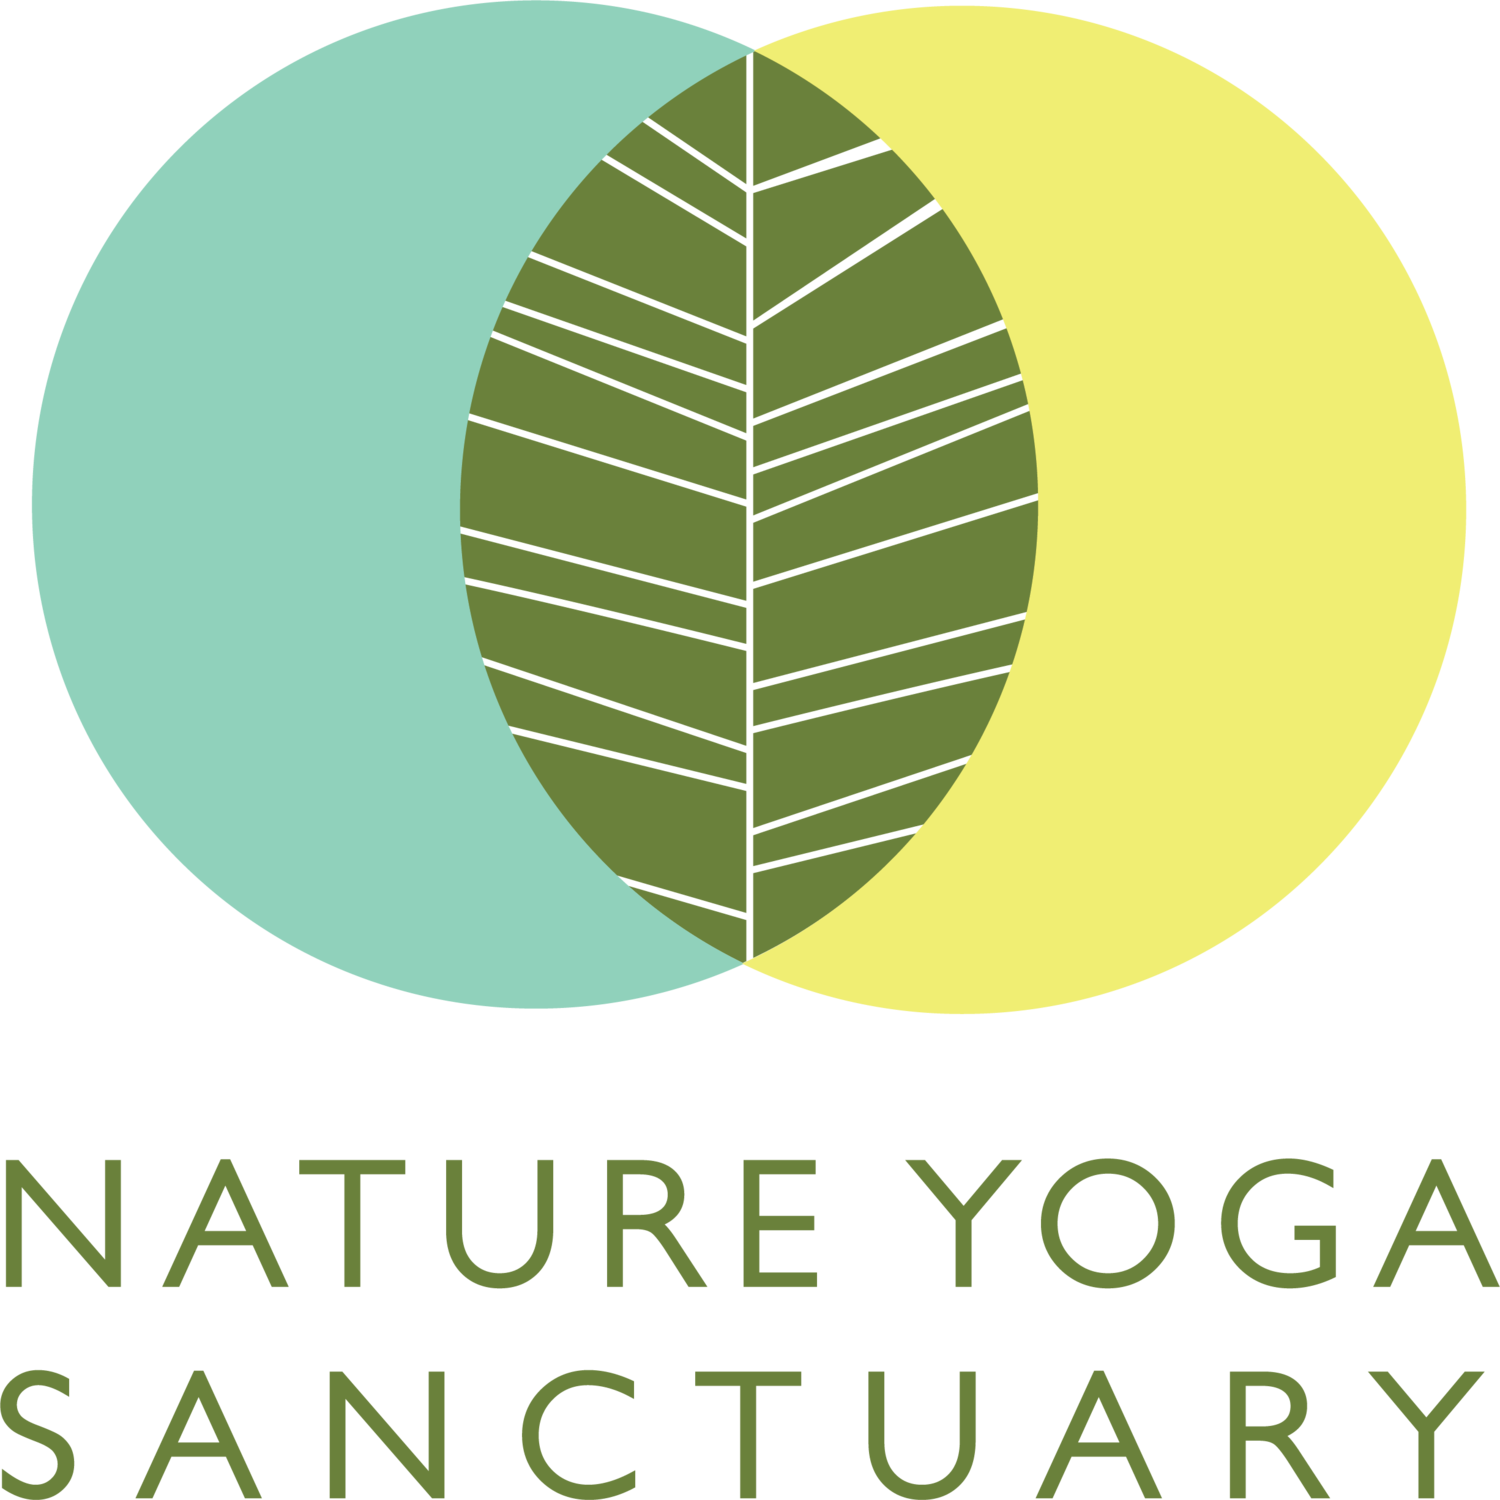 Nature Yoga Sanctuary